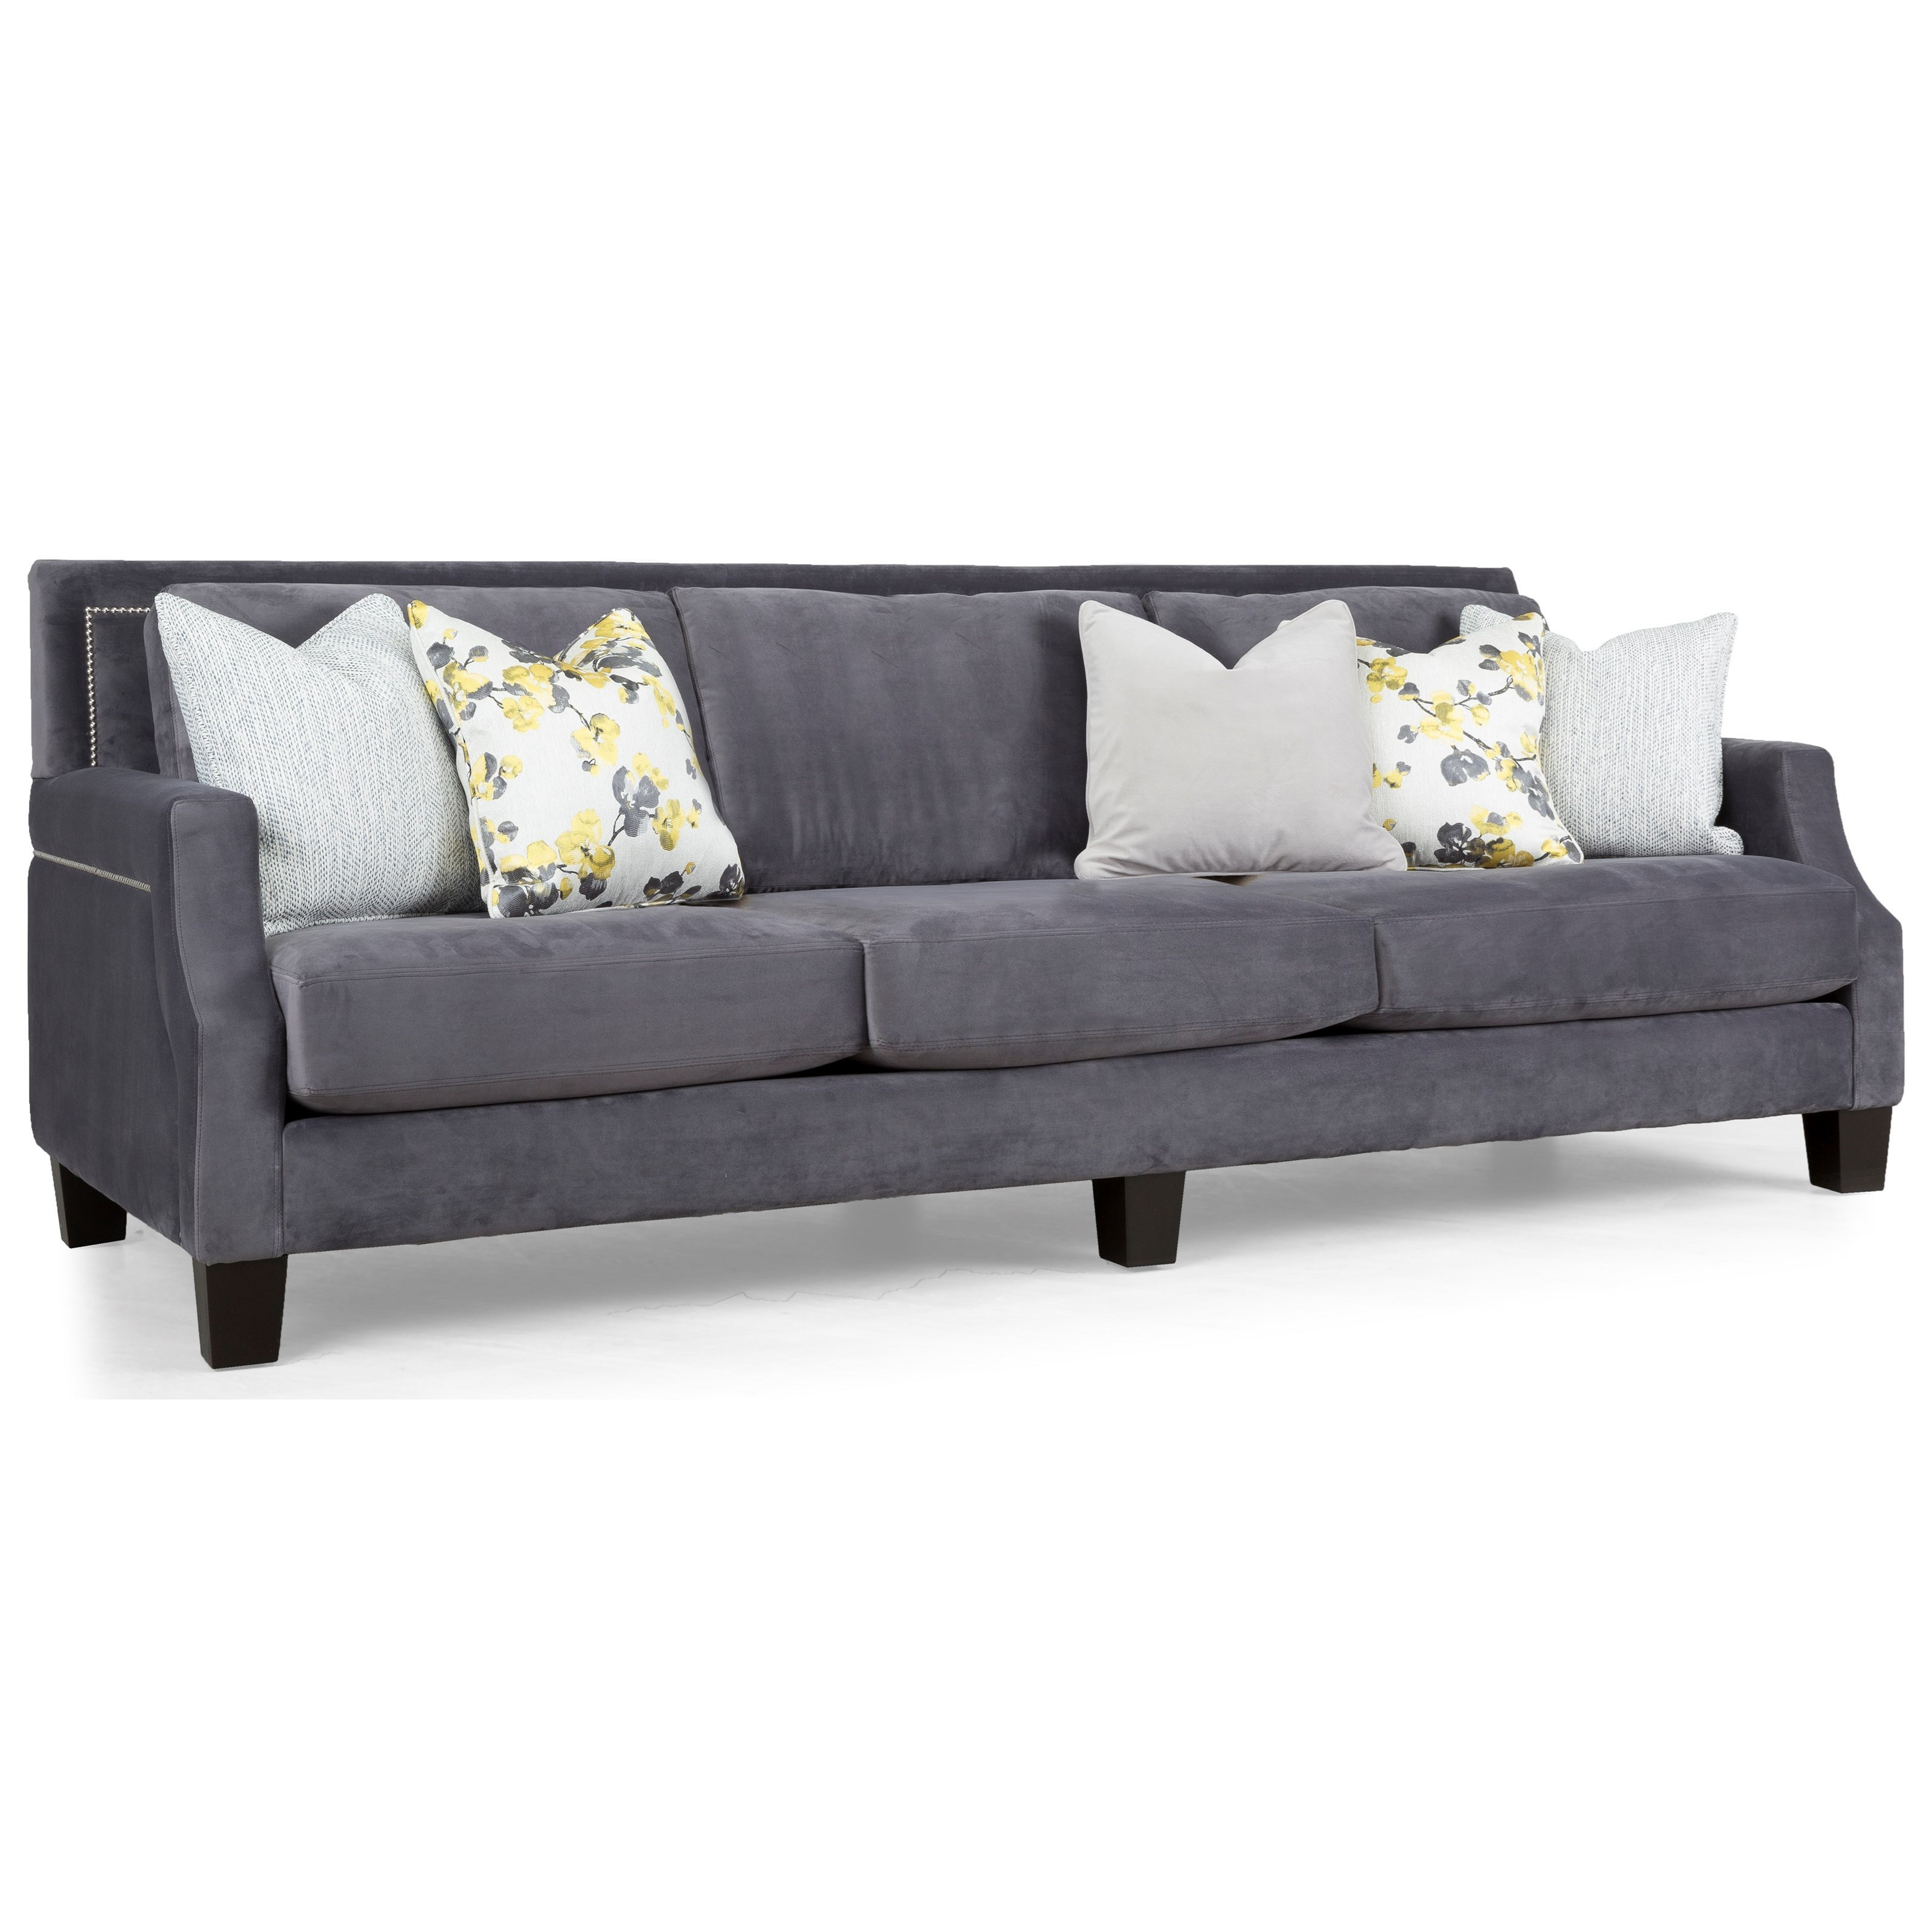 2135  3-Seat Sofa by Decor-Rest at Johnny Janosik